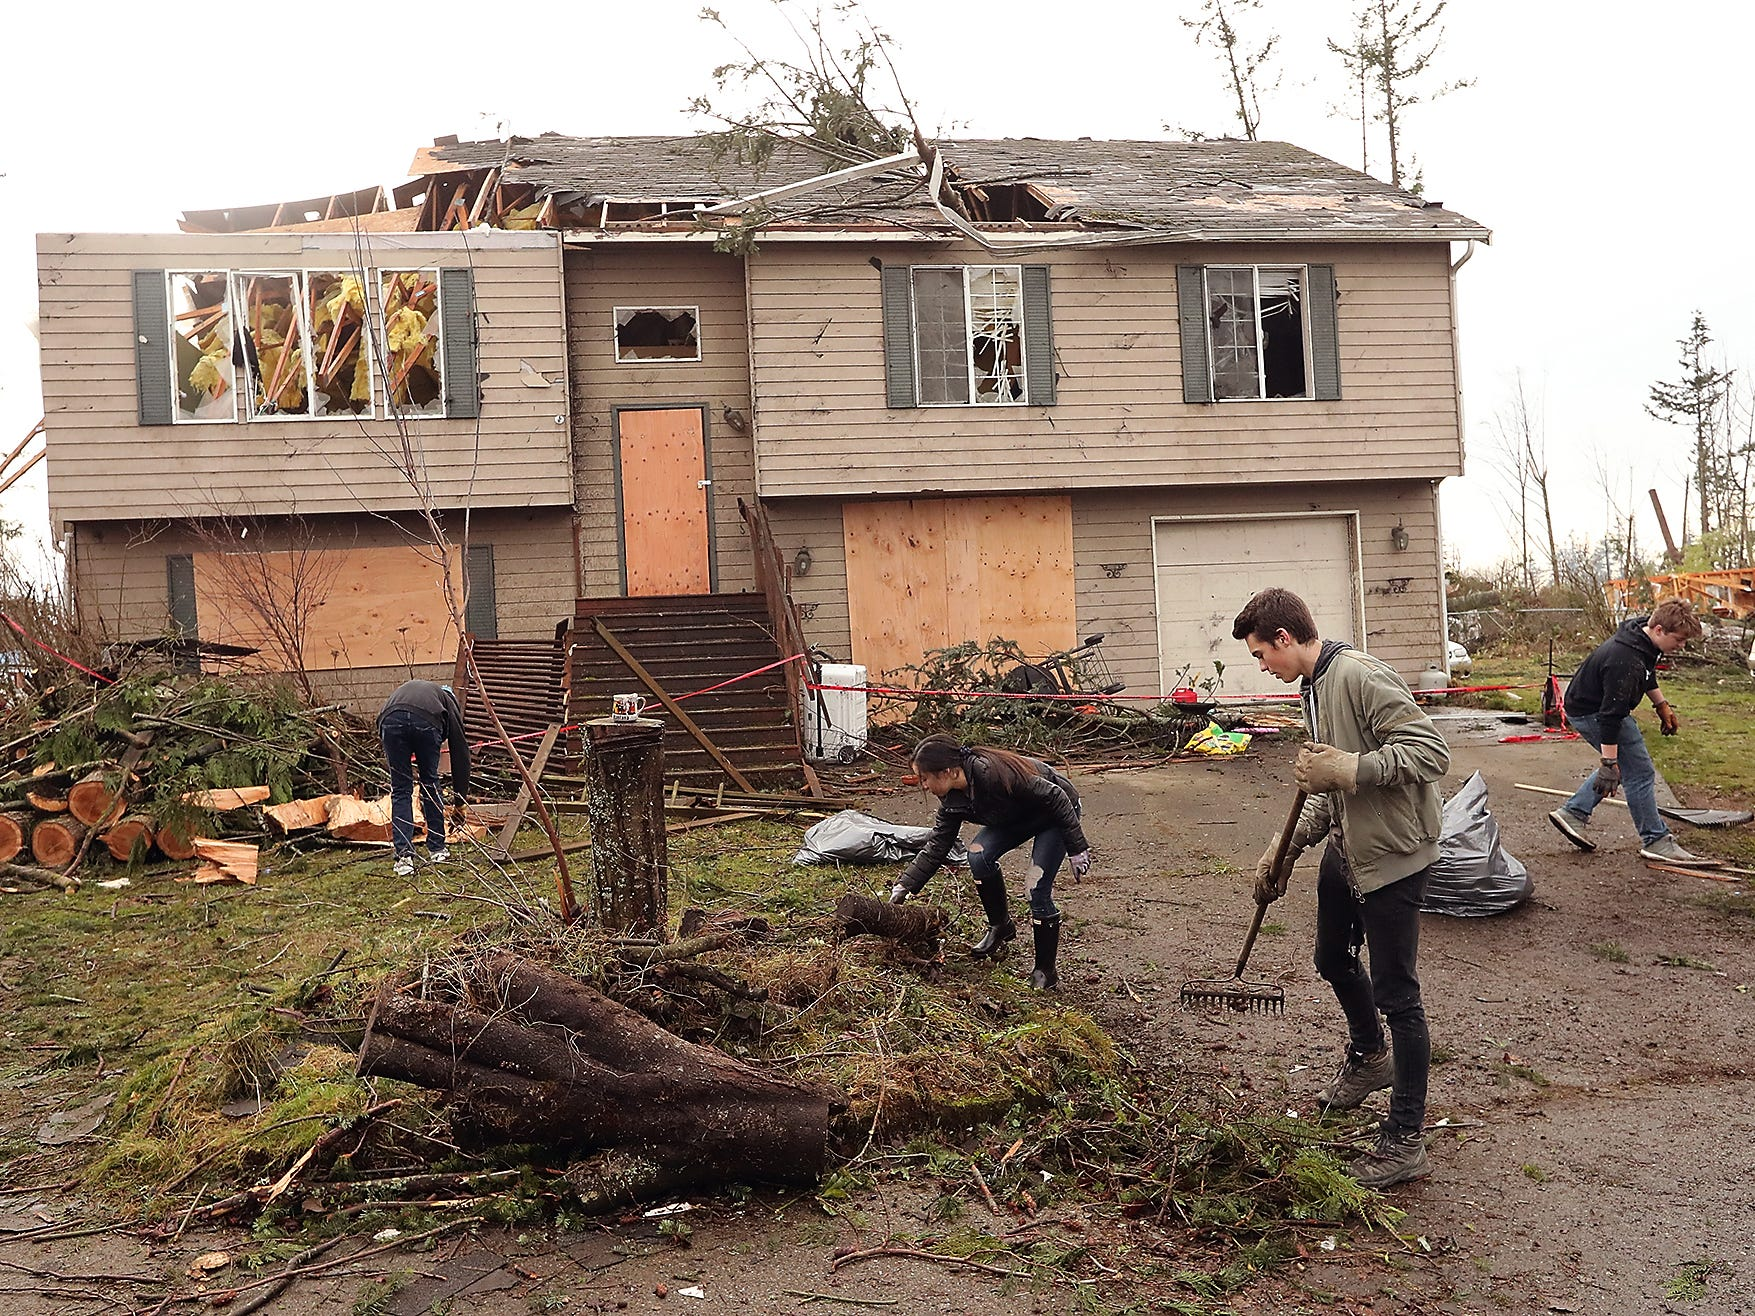 South Kitsap High School student volunteers (left to right) Dylan Rockafield, Kaili Arruda, Owen Chaffin, and Brad King rake and remove debris from the front yard of the Crain family's tornado damaged home on Tiburon Ct. in Port Orchard on Friday, December 21, 2018.